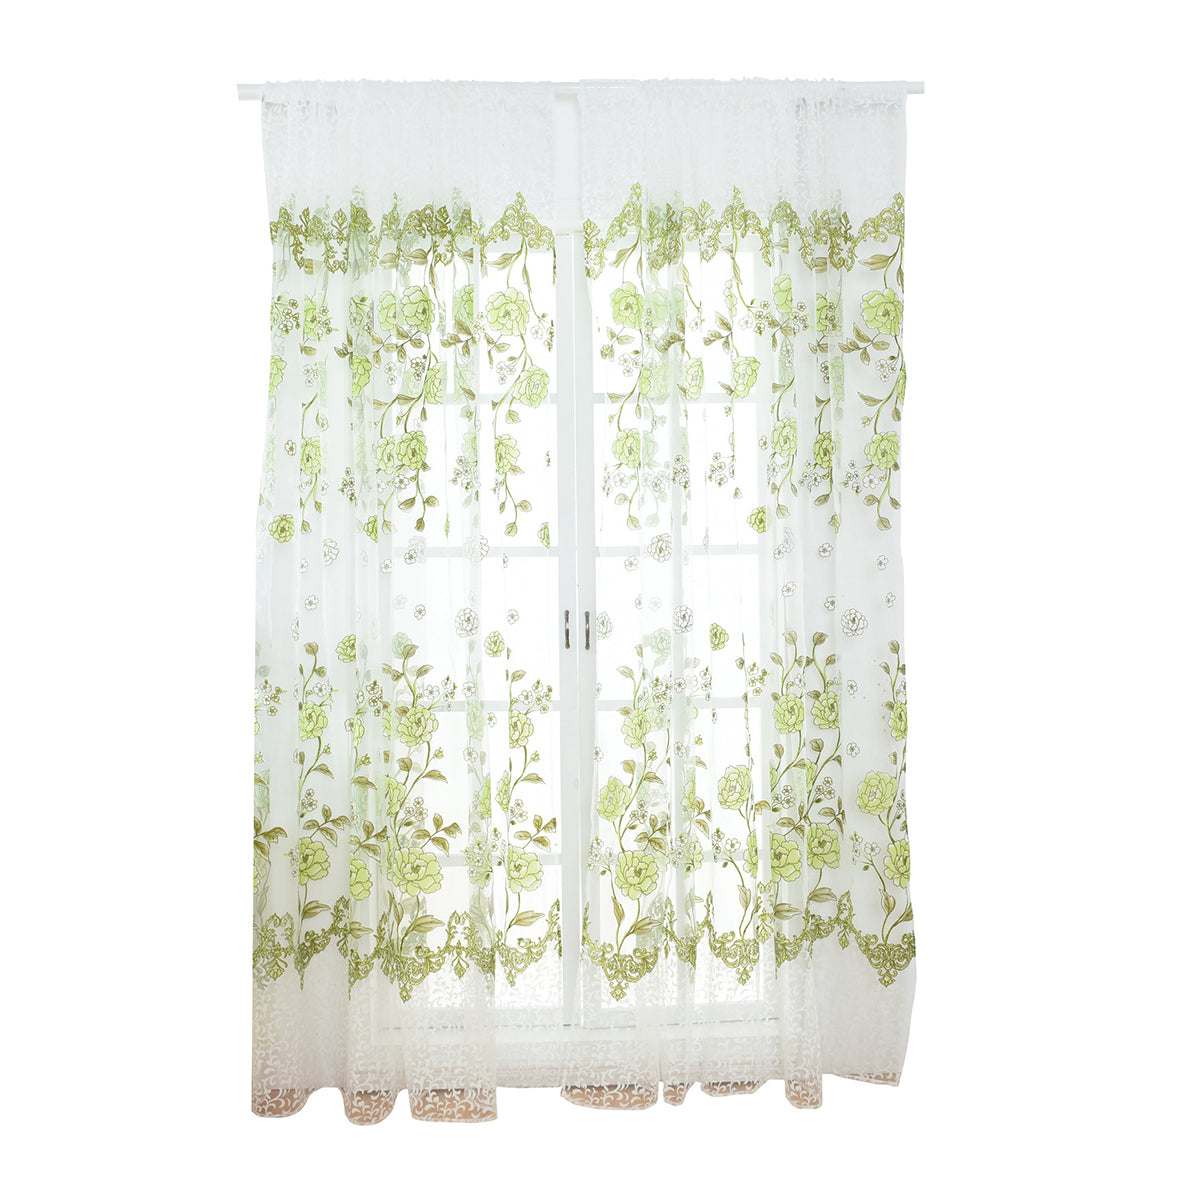 Costbuys  Sheer Floral Curtains Home Decor Window Treatments Modern Curtain Pour Le Salon Window - Green